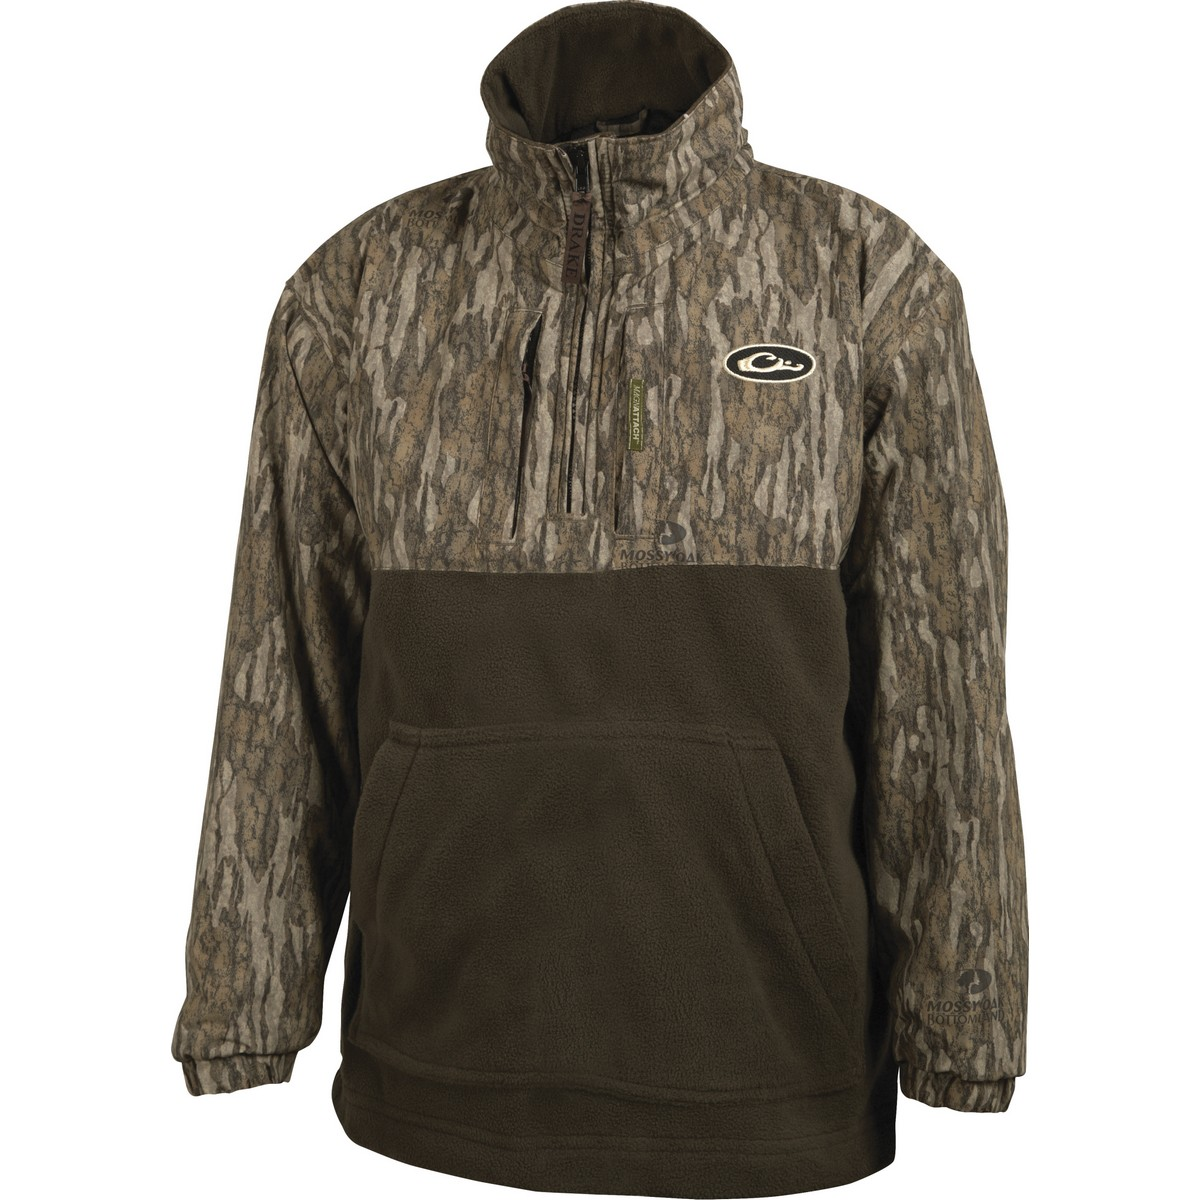 Youth Hunting Clothing - Jackets, Bibs, & More   Mack's PW